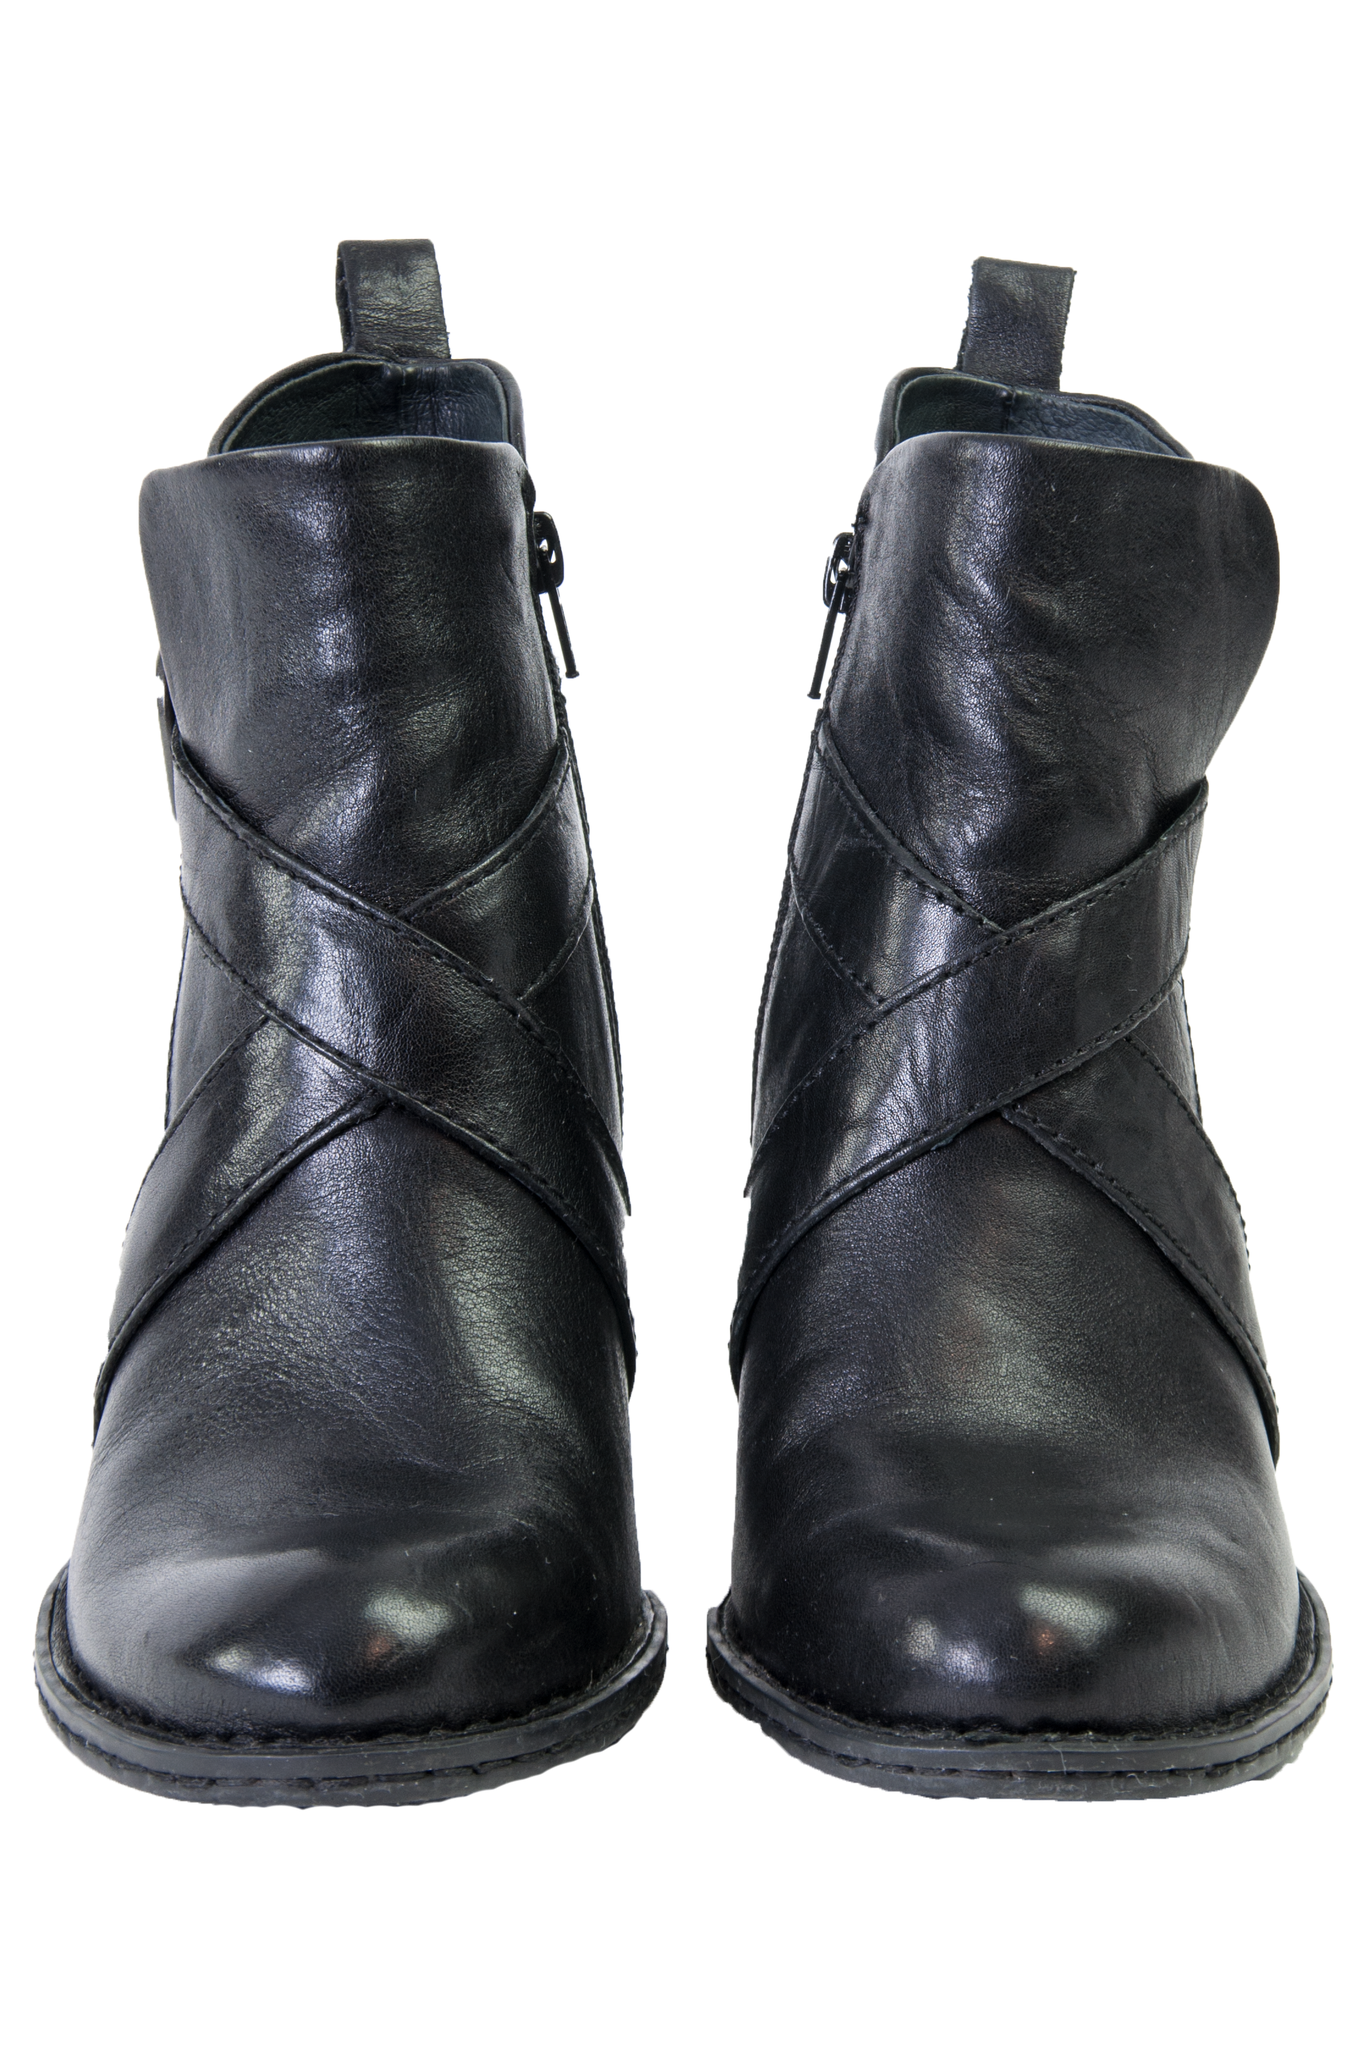 black leather booties with round toe and pull tab at back